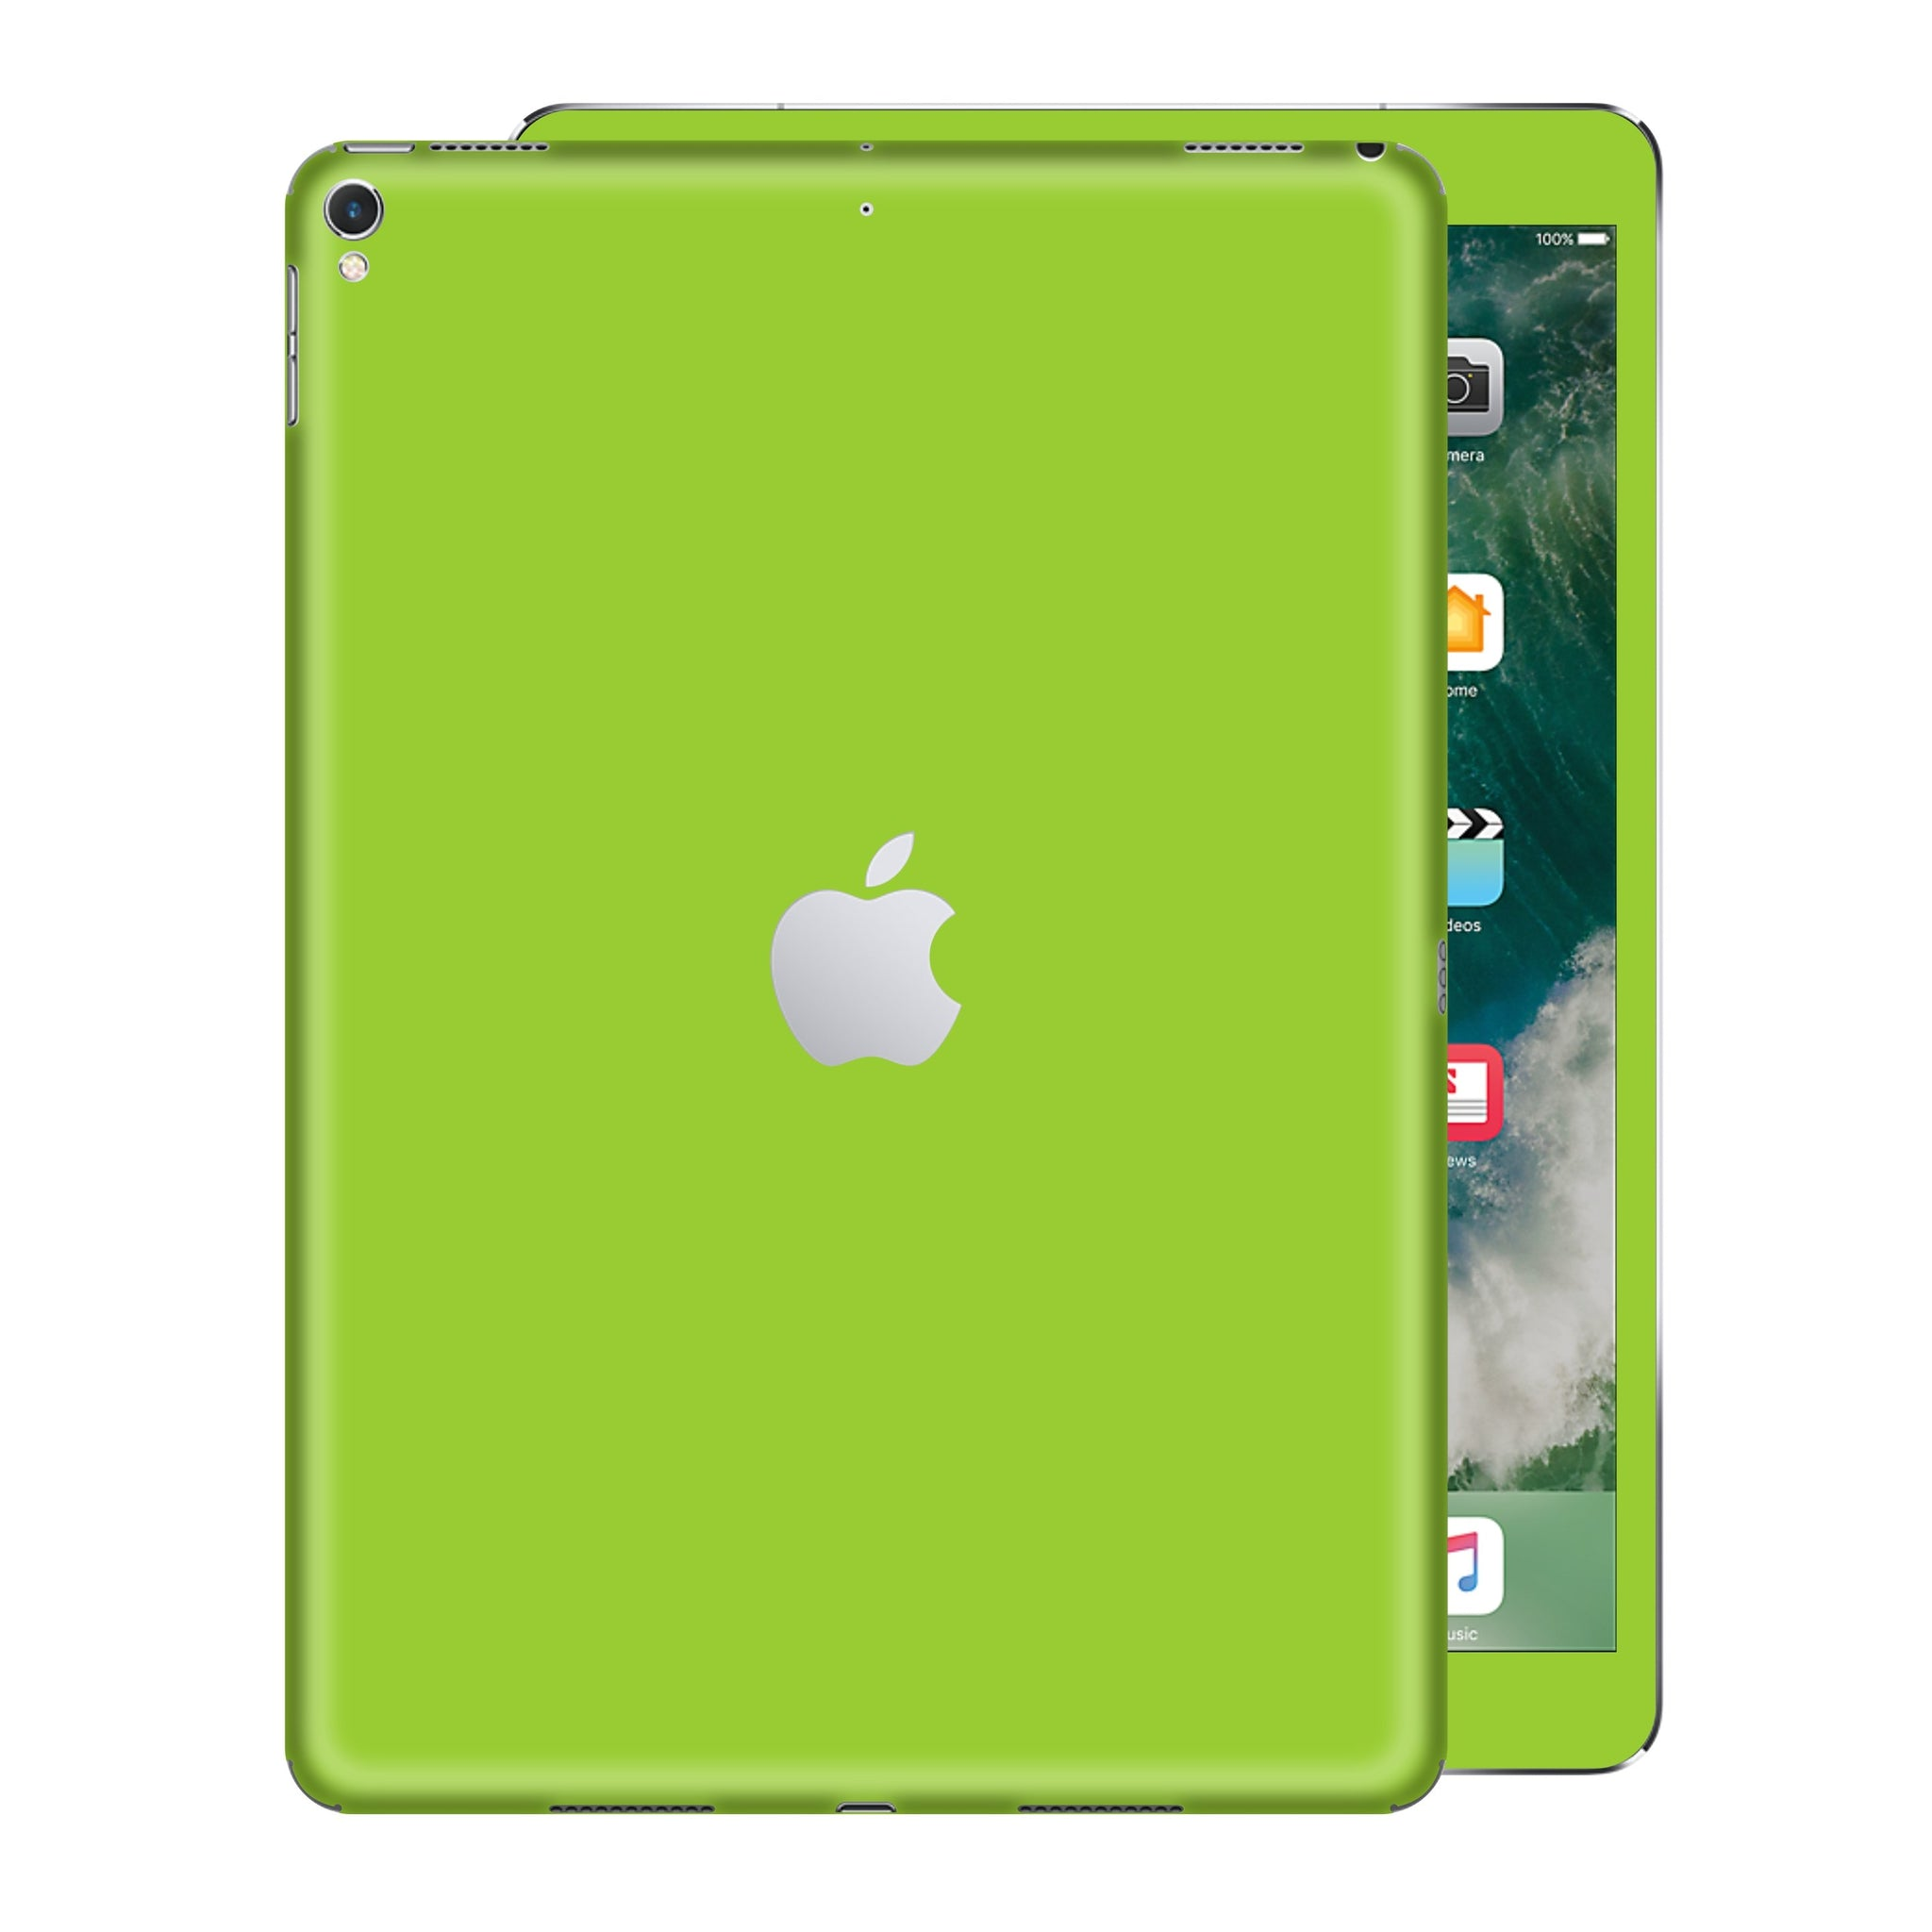 iPad PRO 10.5inch 2017 Matt Matte Green Skin Wrap Sticker Decal Cover Protector by EasySkinz